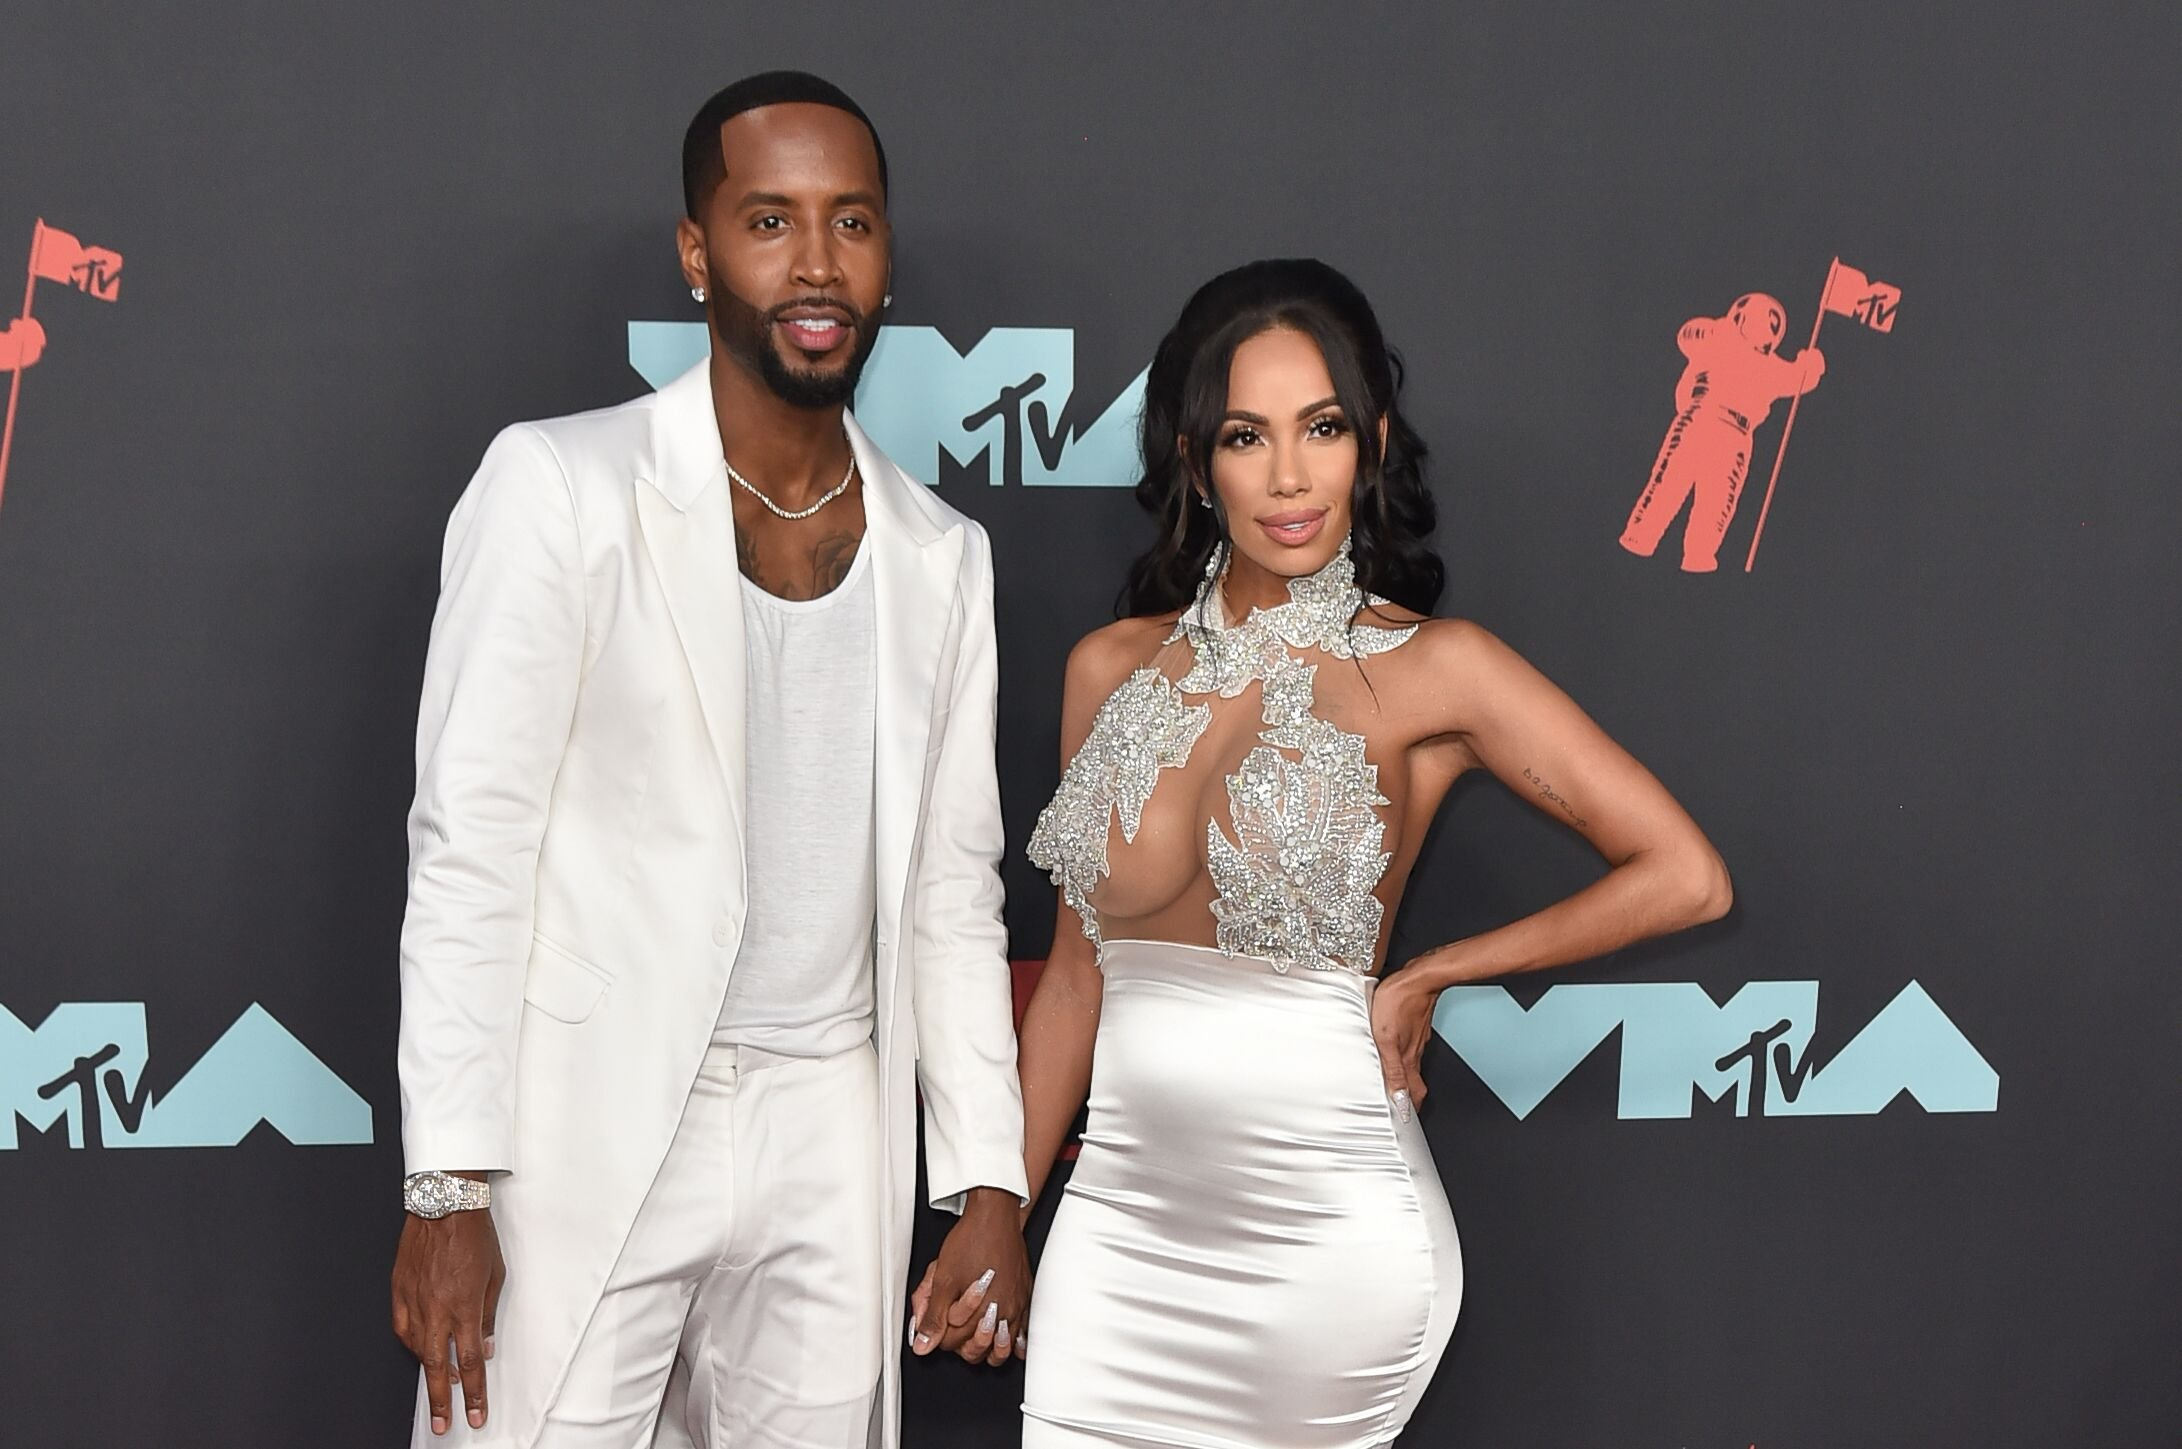 Safaree Samuels and Erica Mena Samuels attend the 2019 MTV Video Music Awards/ Source: Getty Images